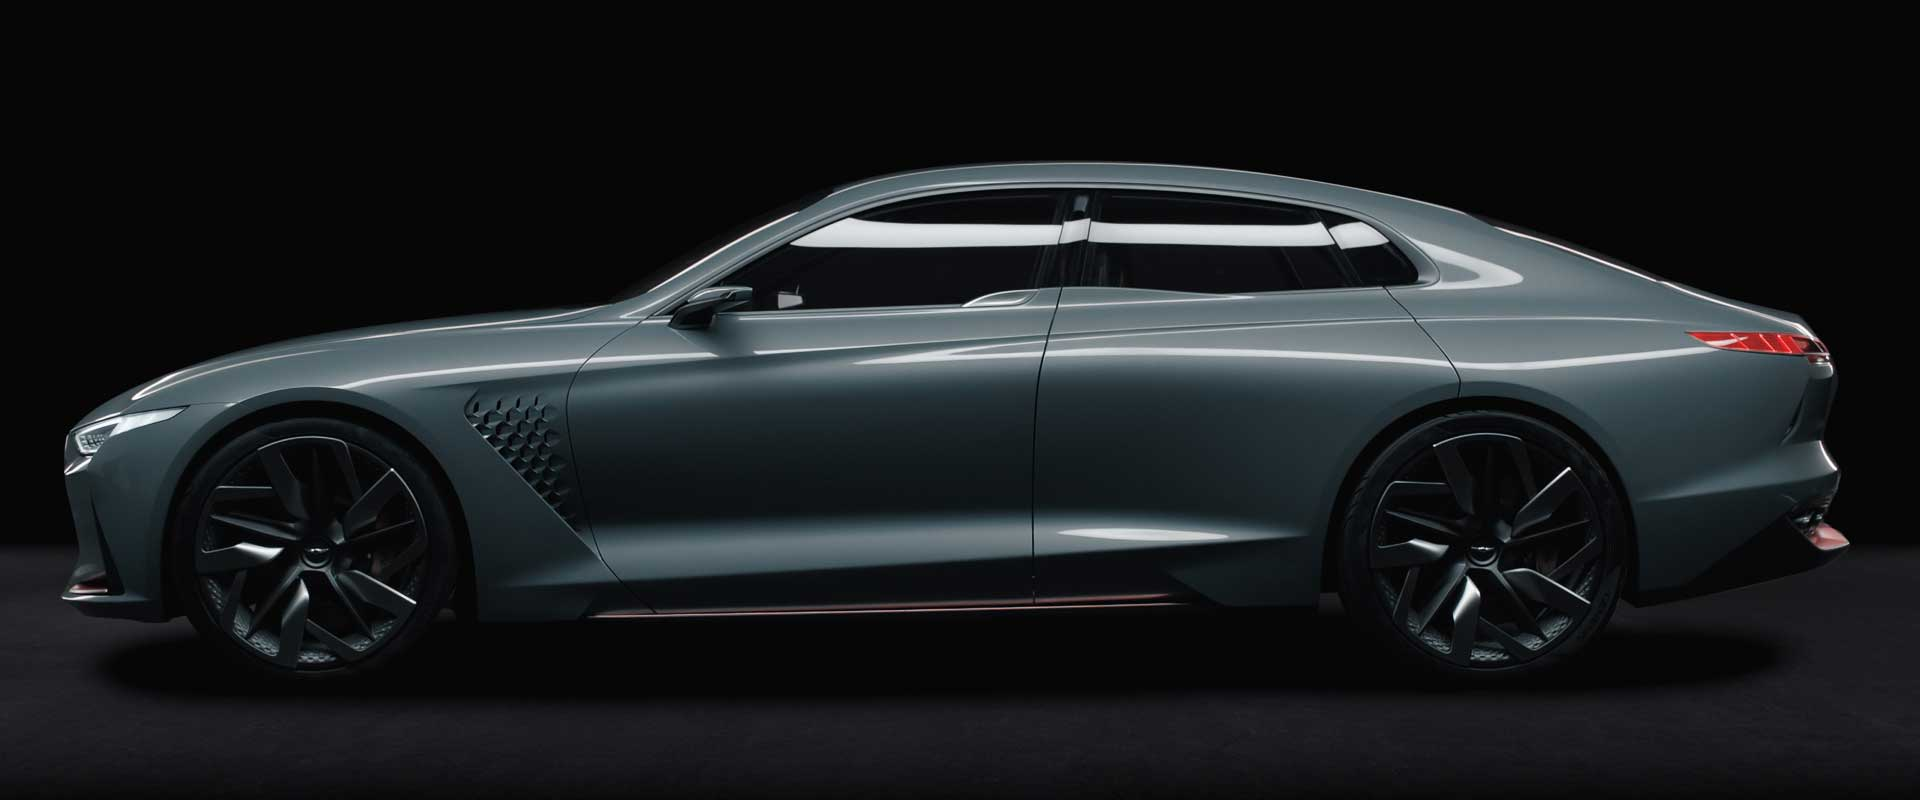 Sideview car. Still from Hyundai Genesis commercial.